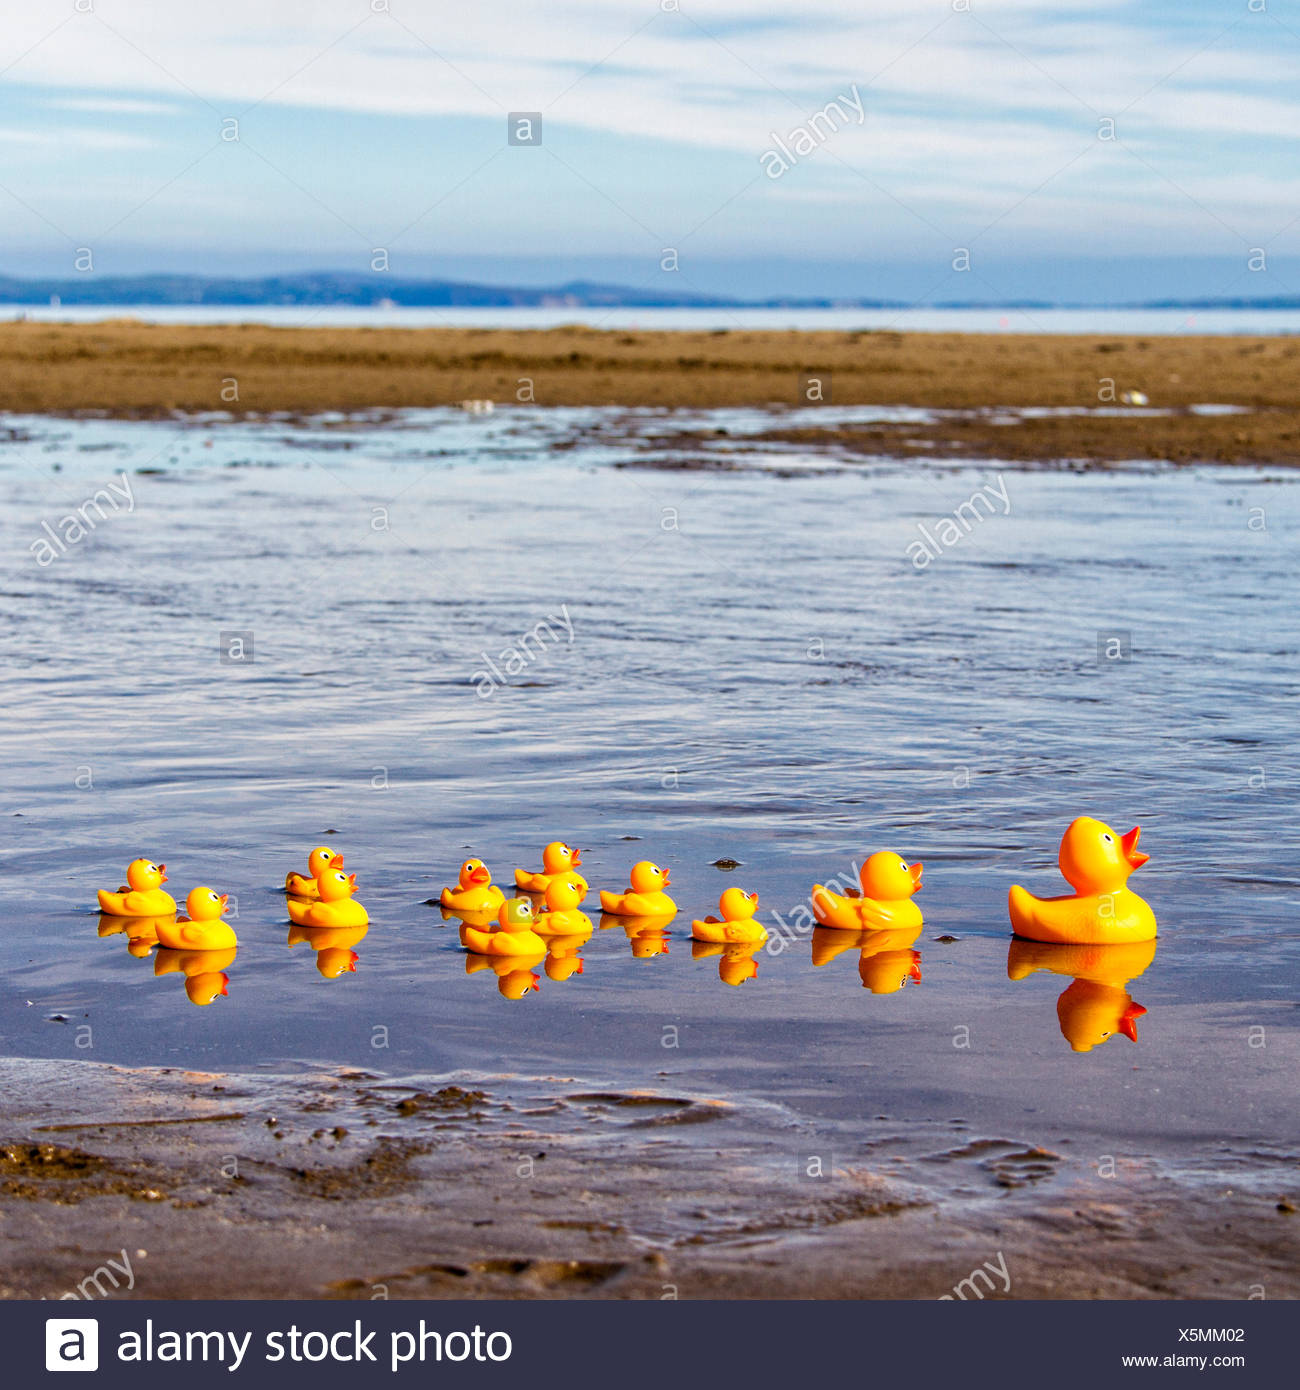 Toy ducks on the beach in a row - Stock Image